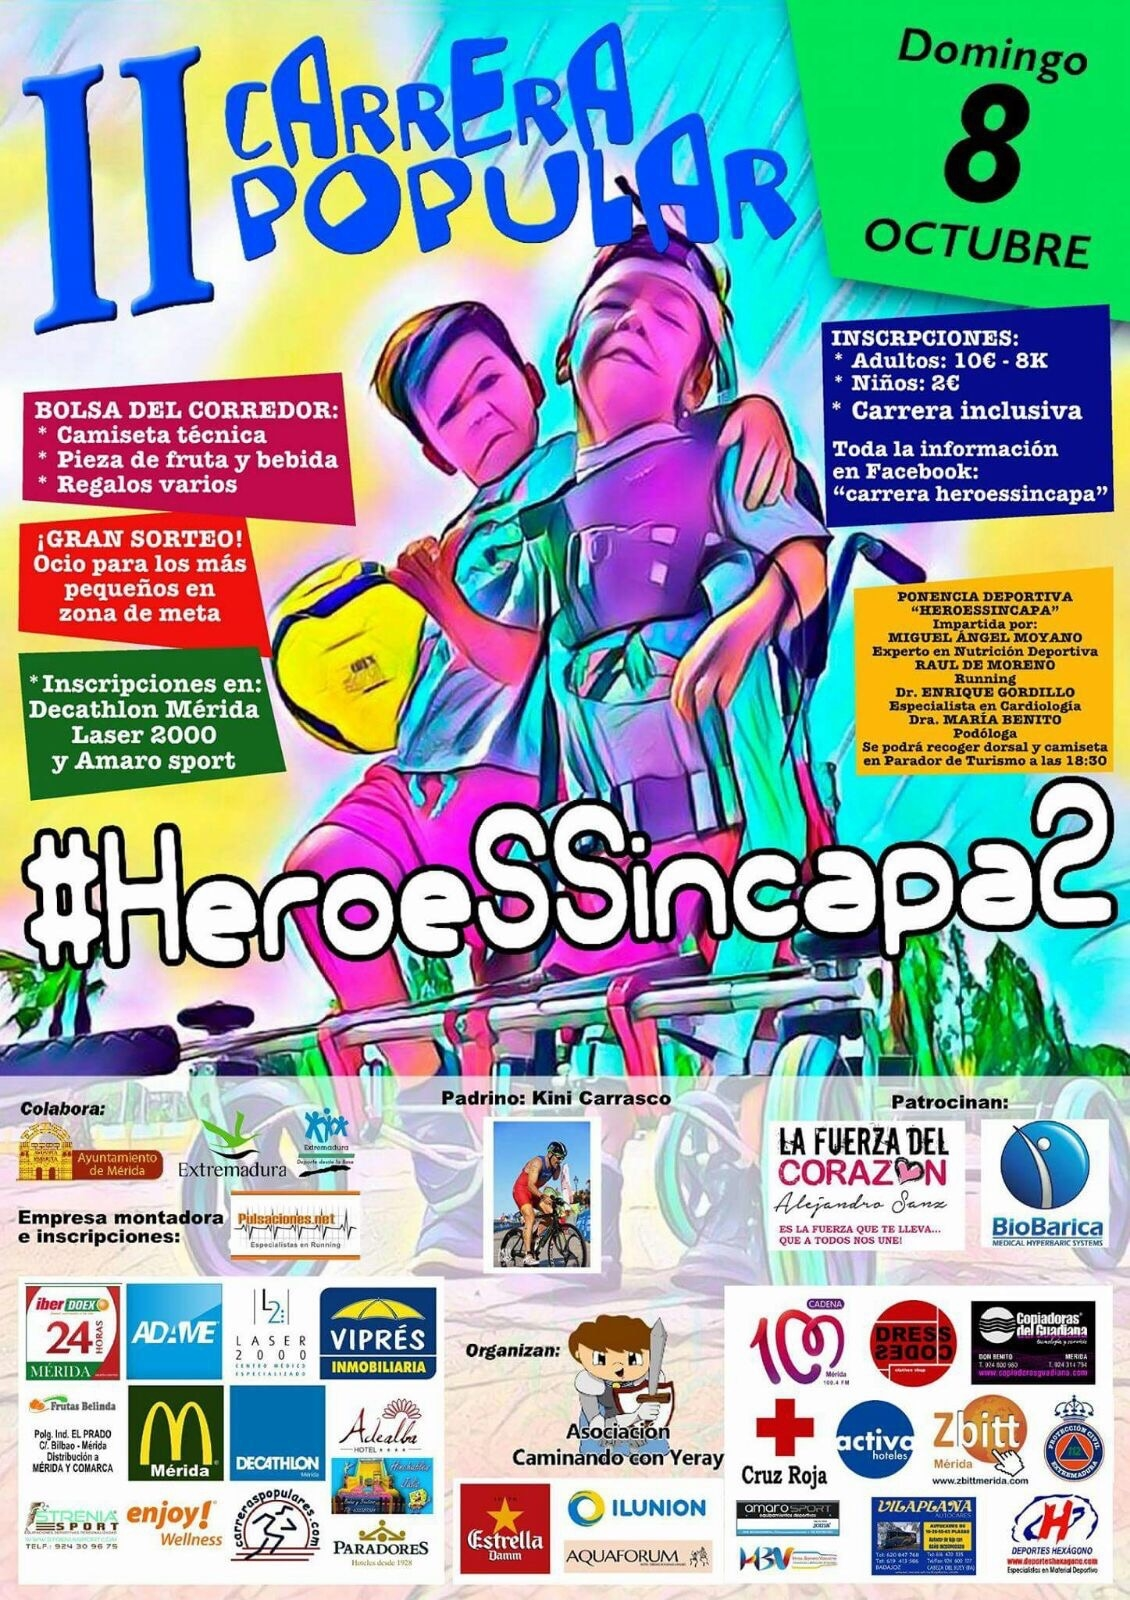 II Carrera Popular #Heroessincapa2